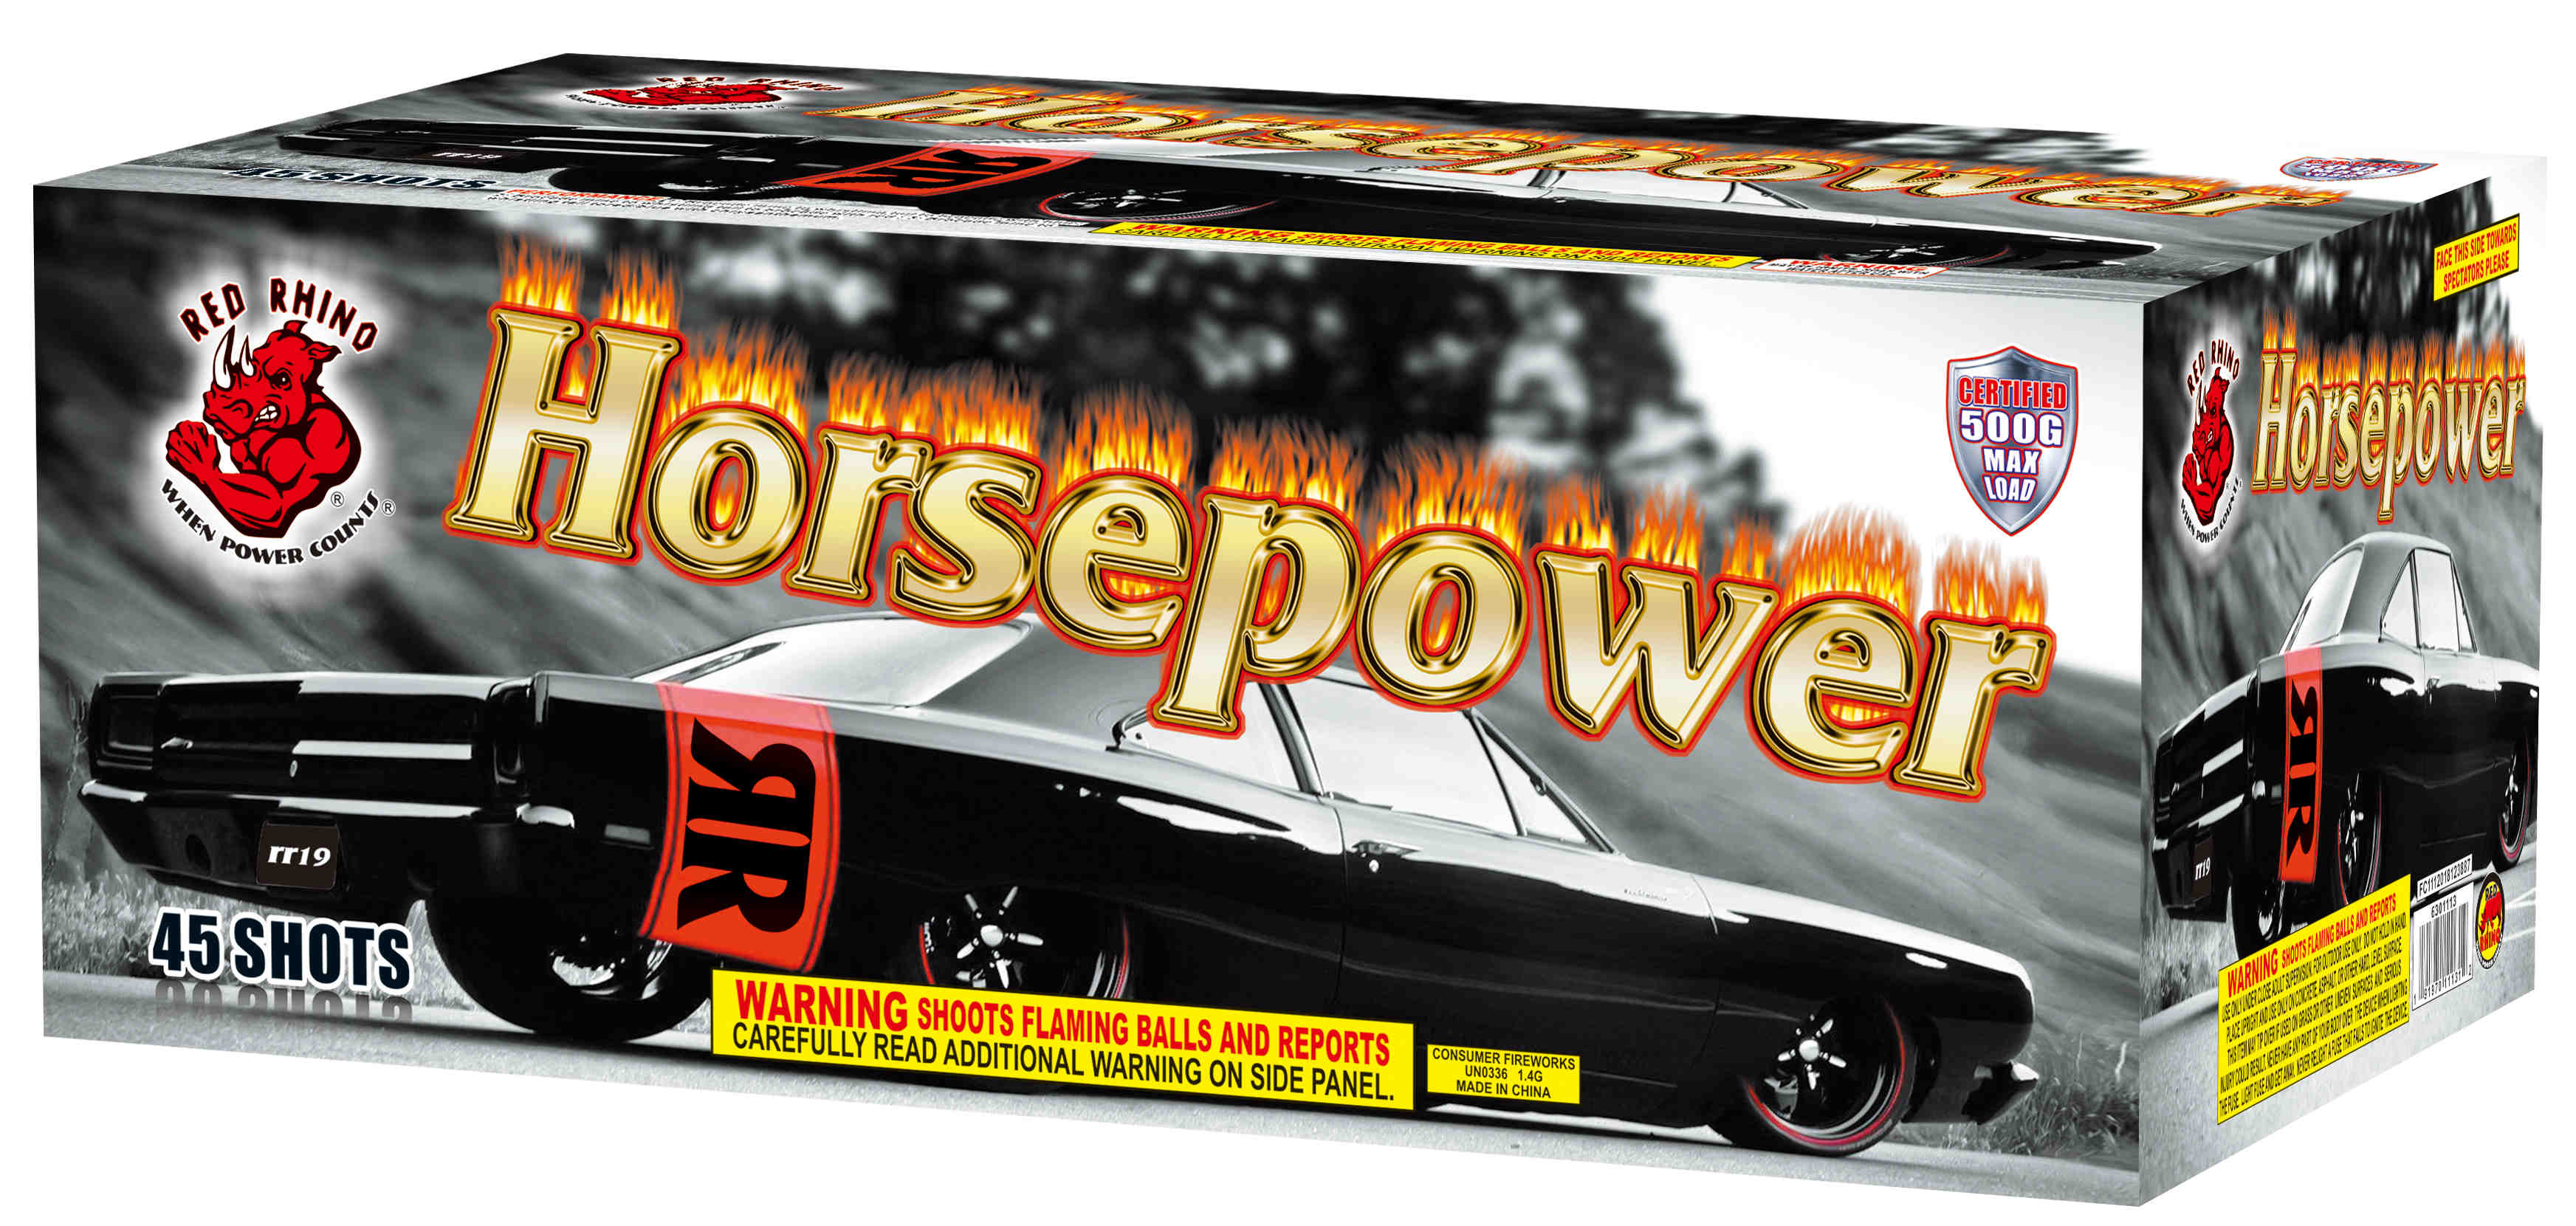 Horsepower - 500 grams of power! Light it up!